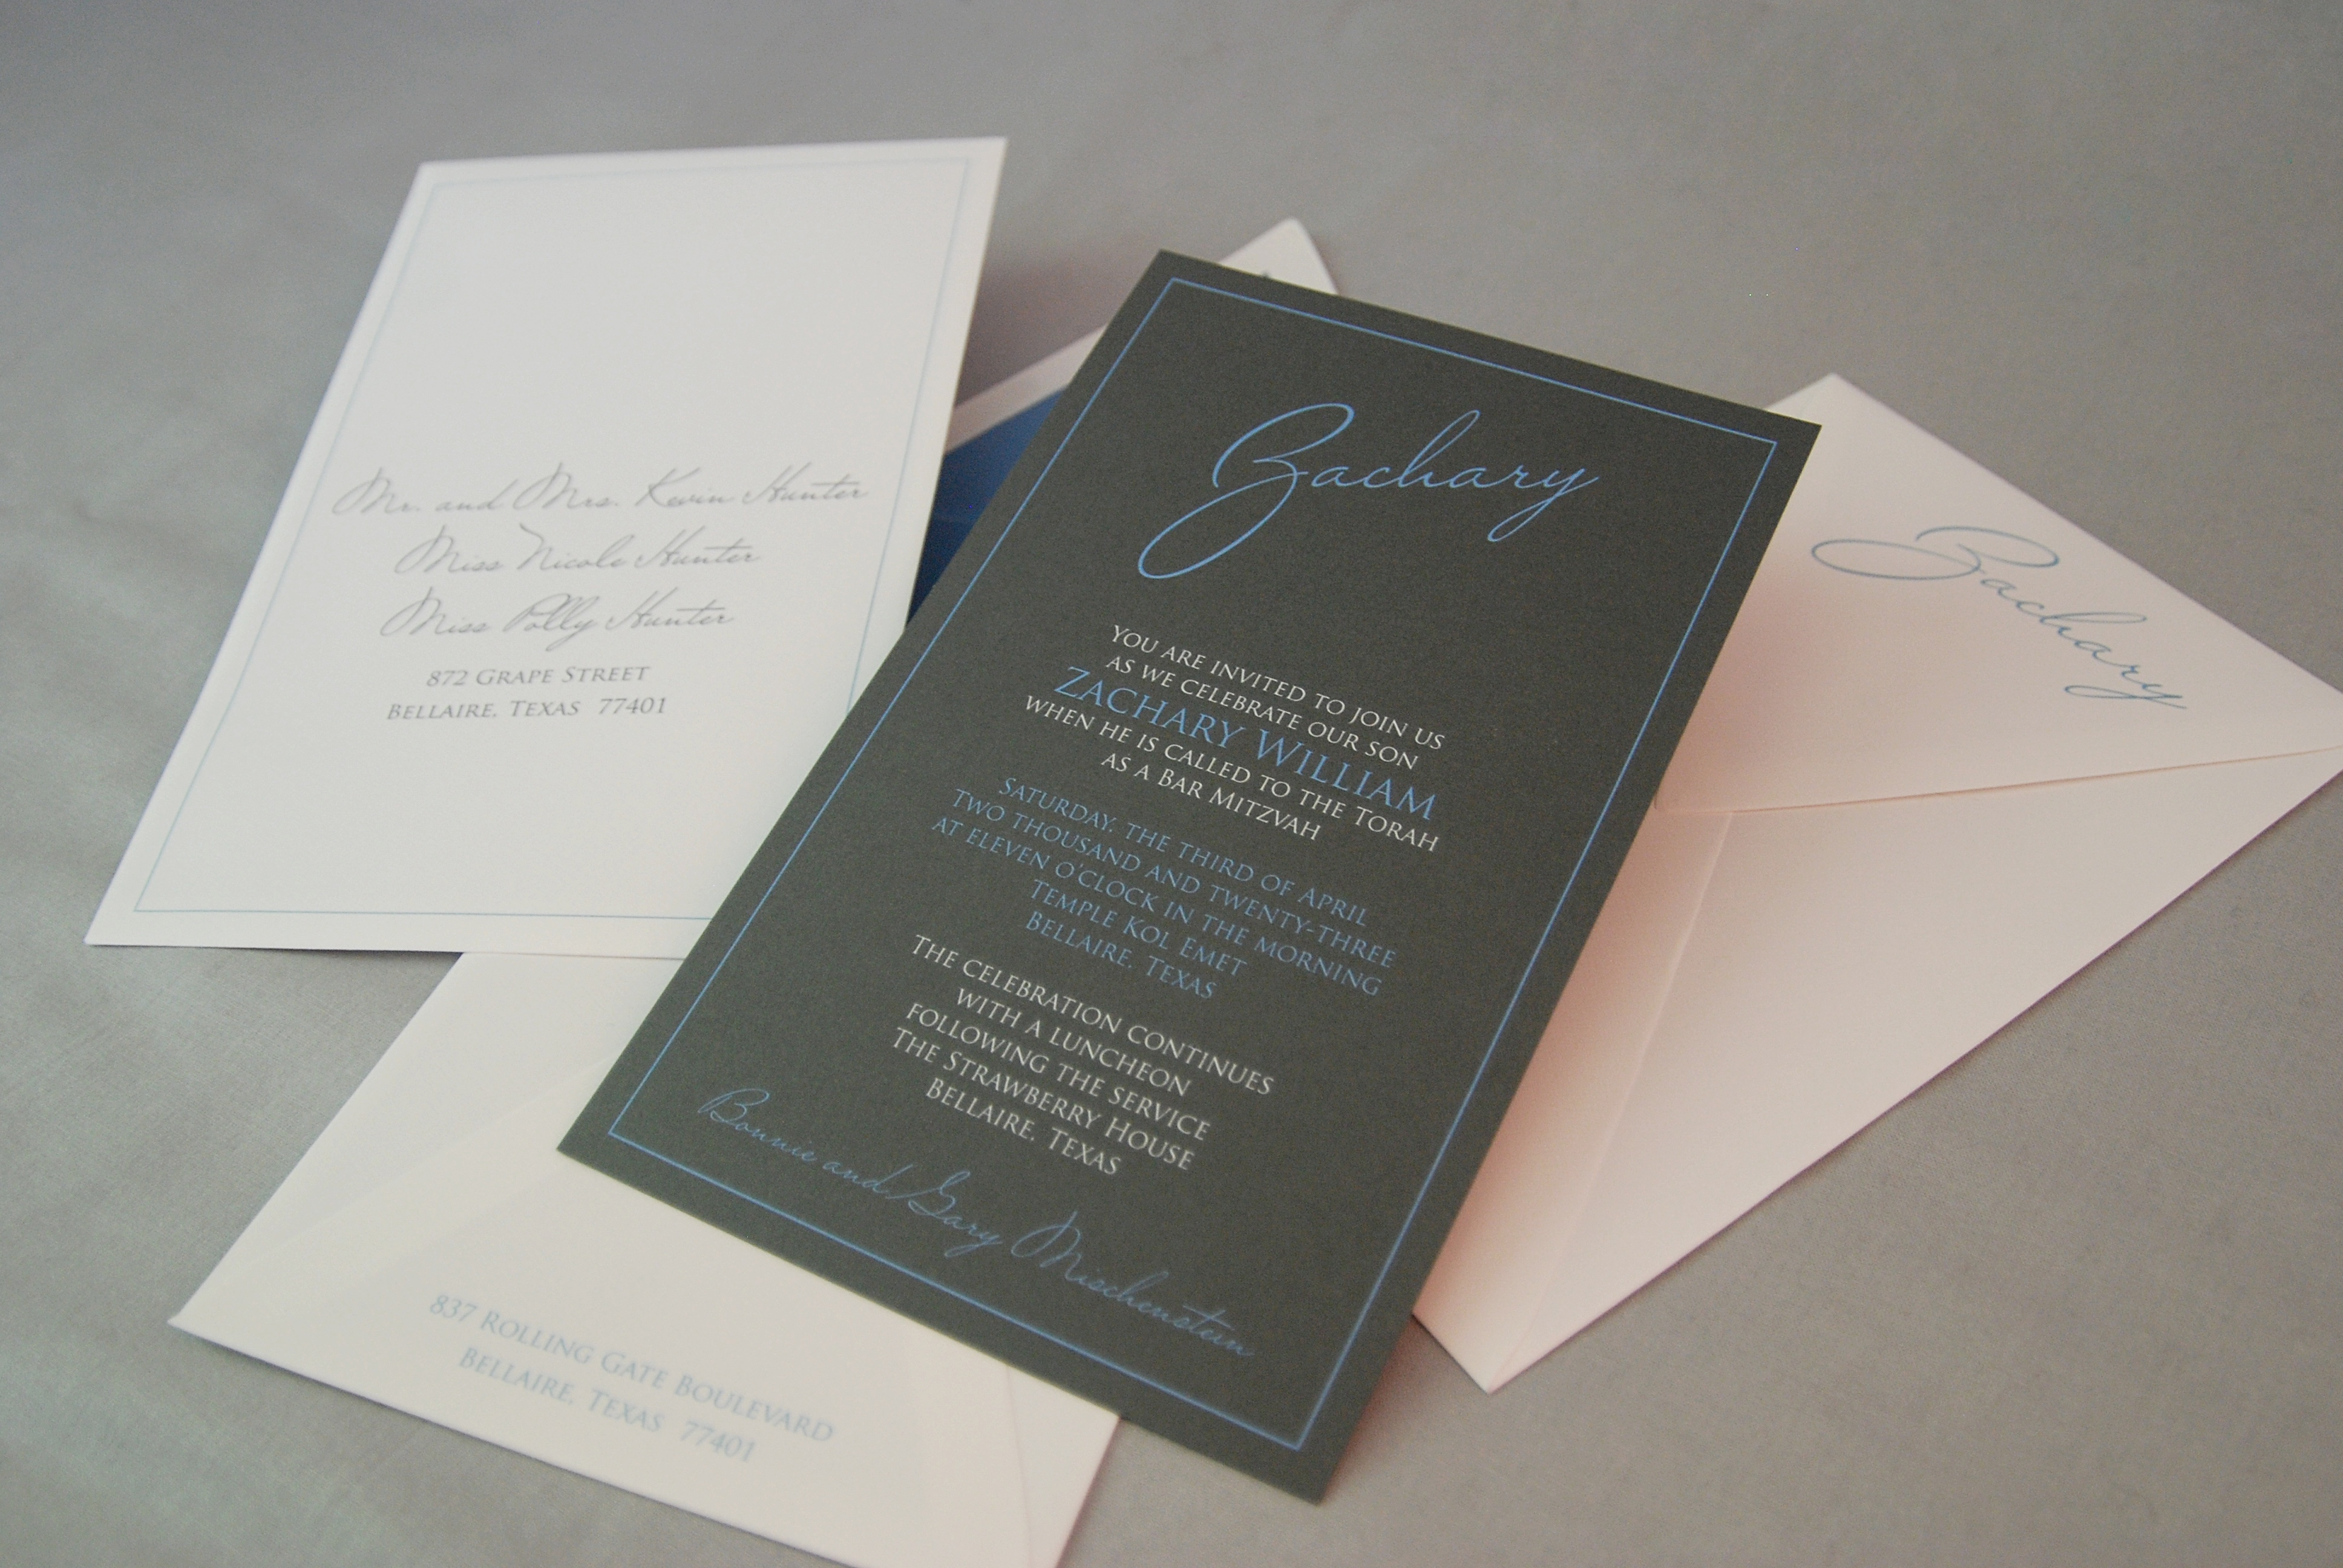 Zachary William Dramatic Bar Mitzvah Invitation in dark gray and soft blue.